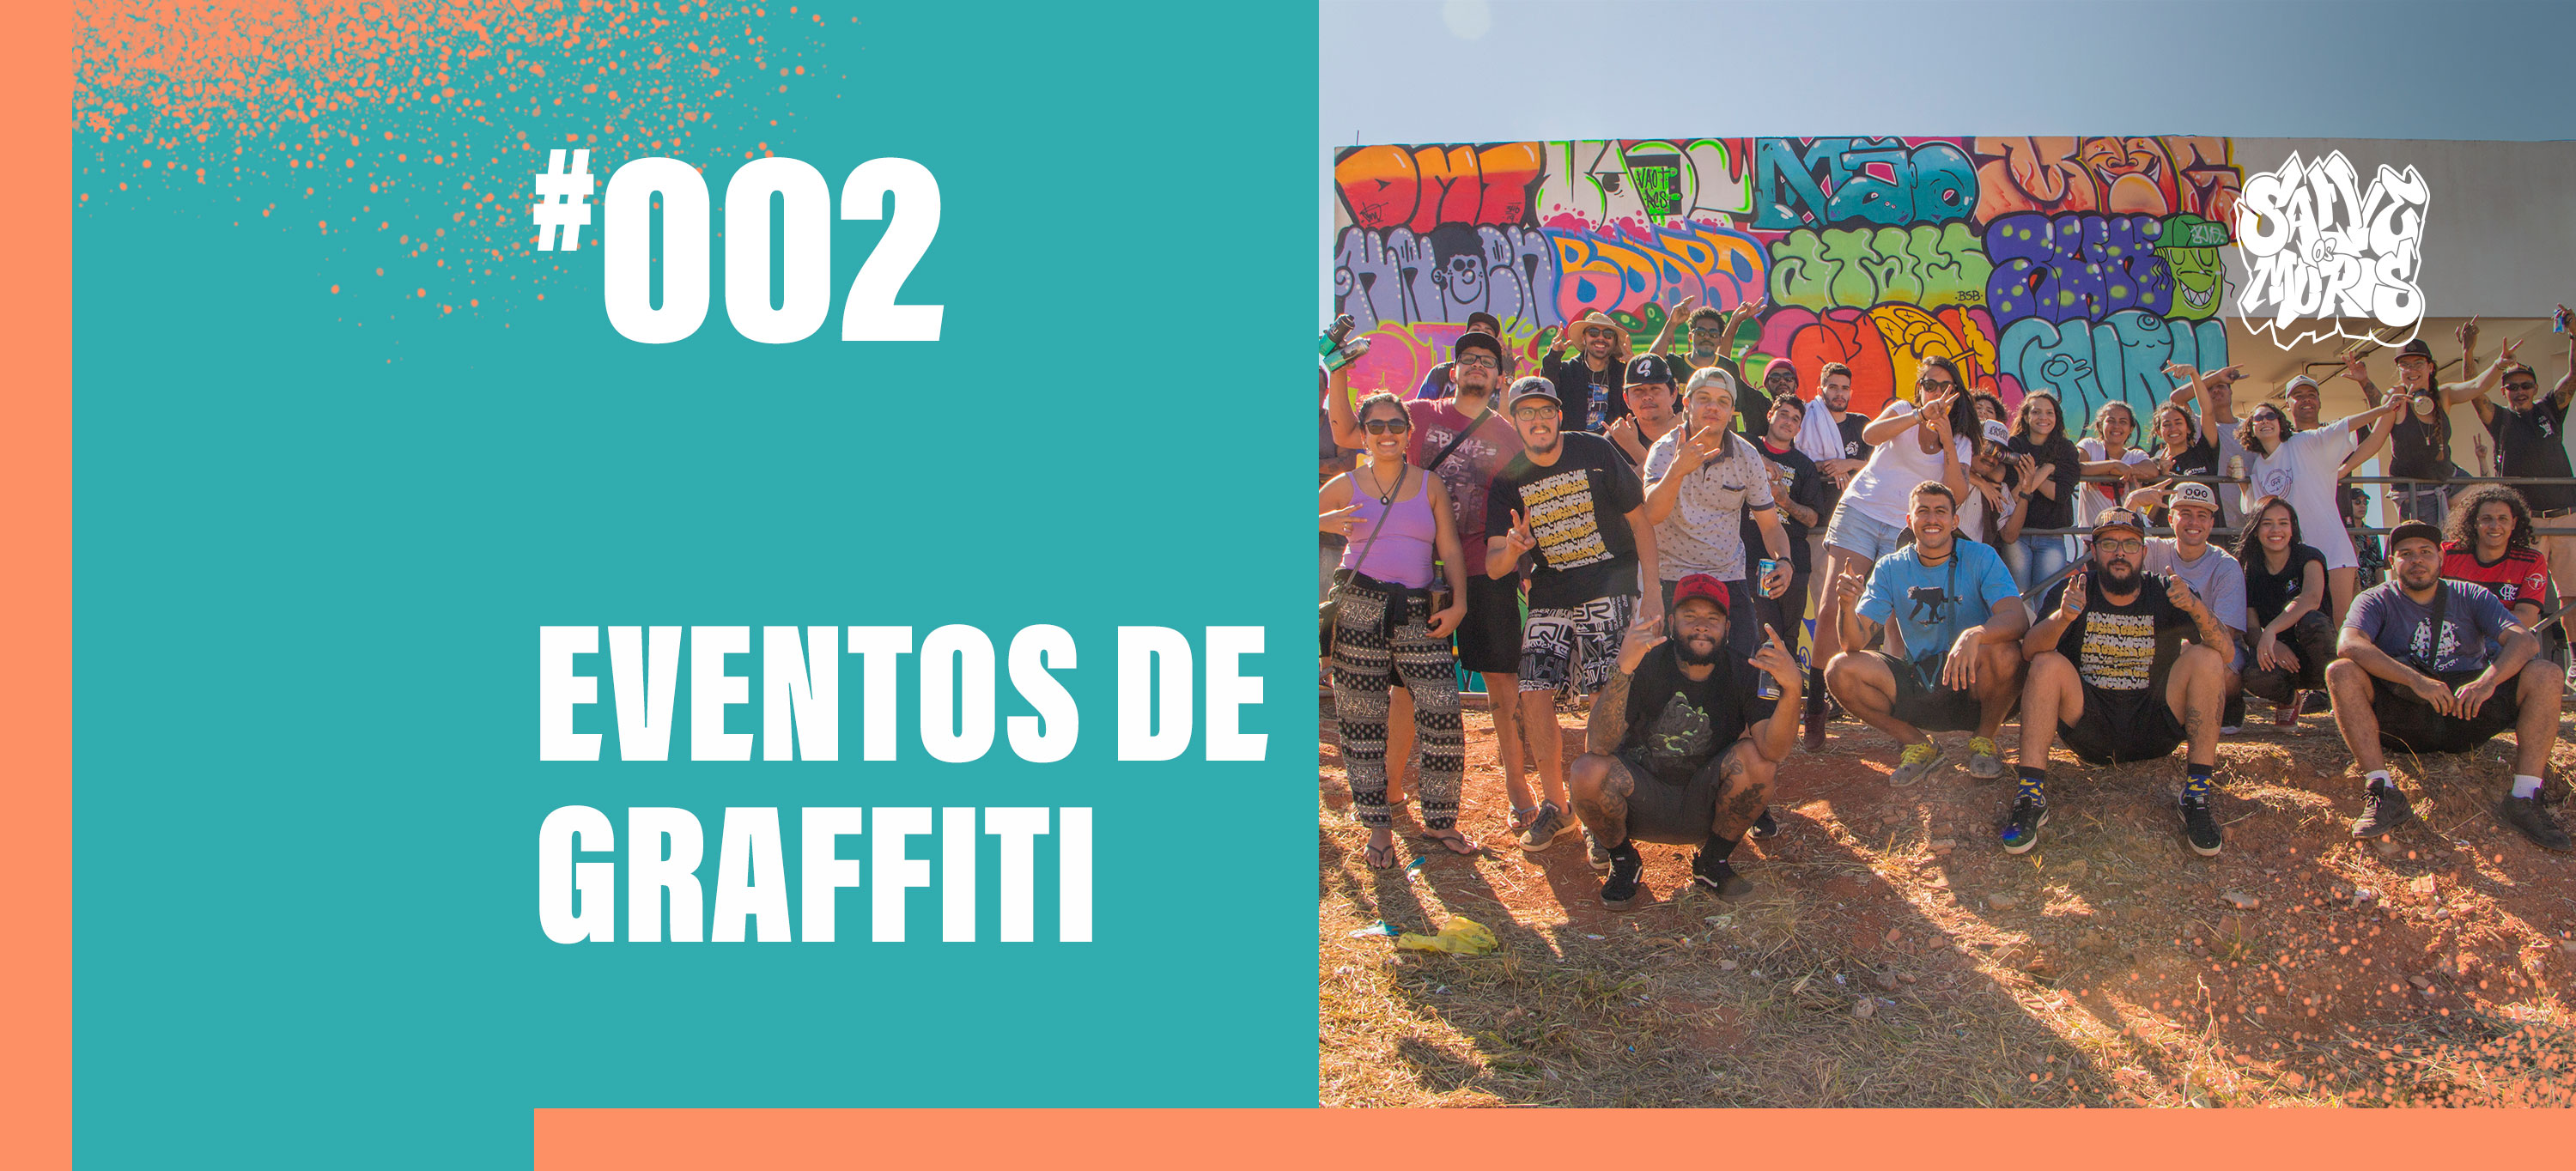 eventos-de-graffiti